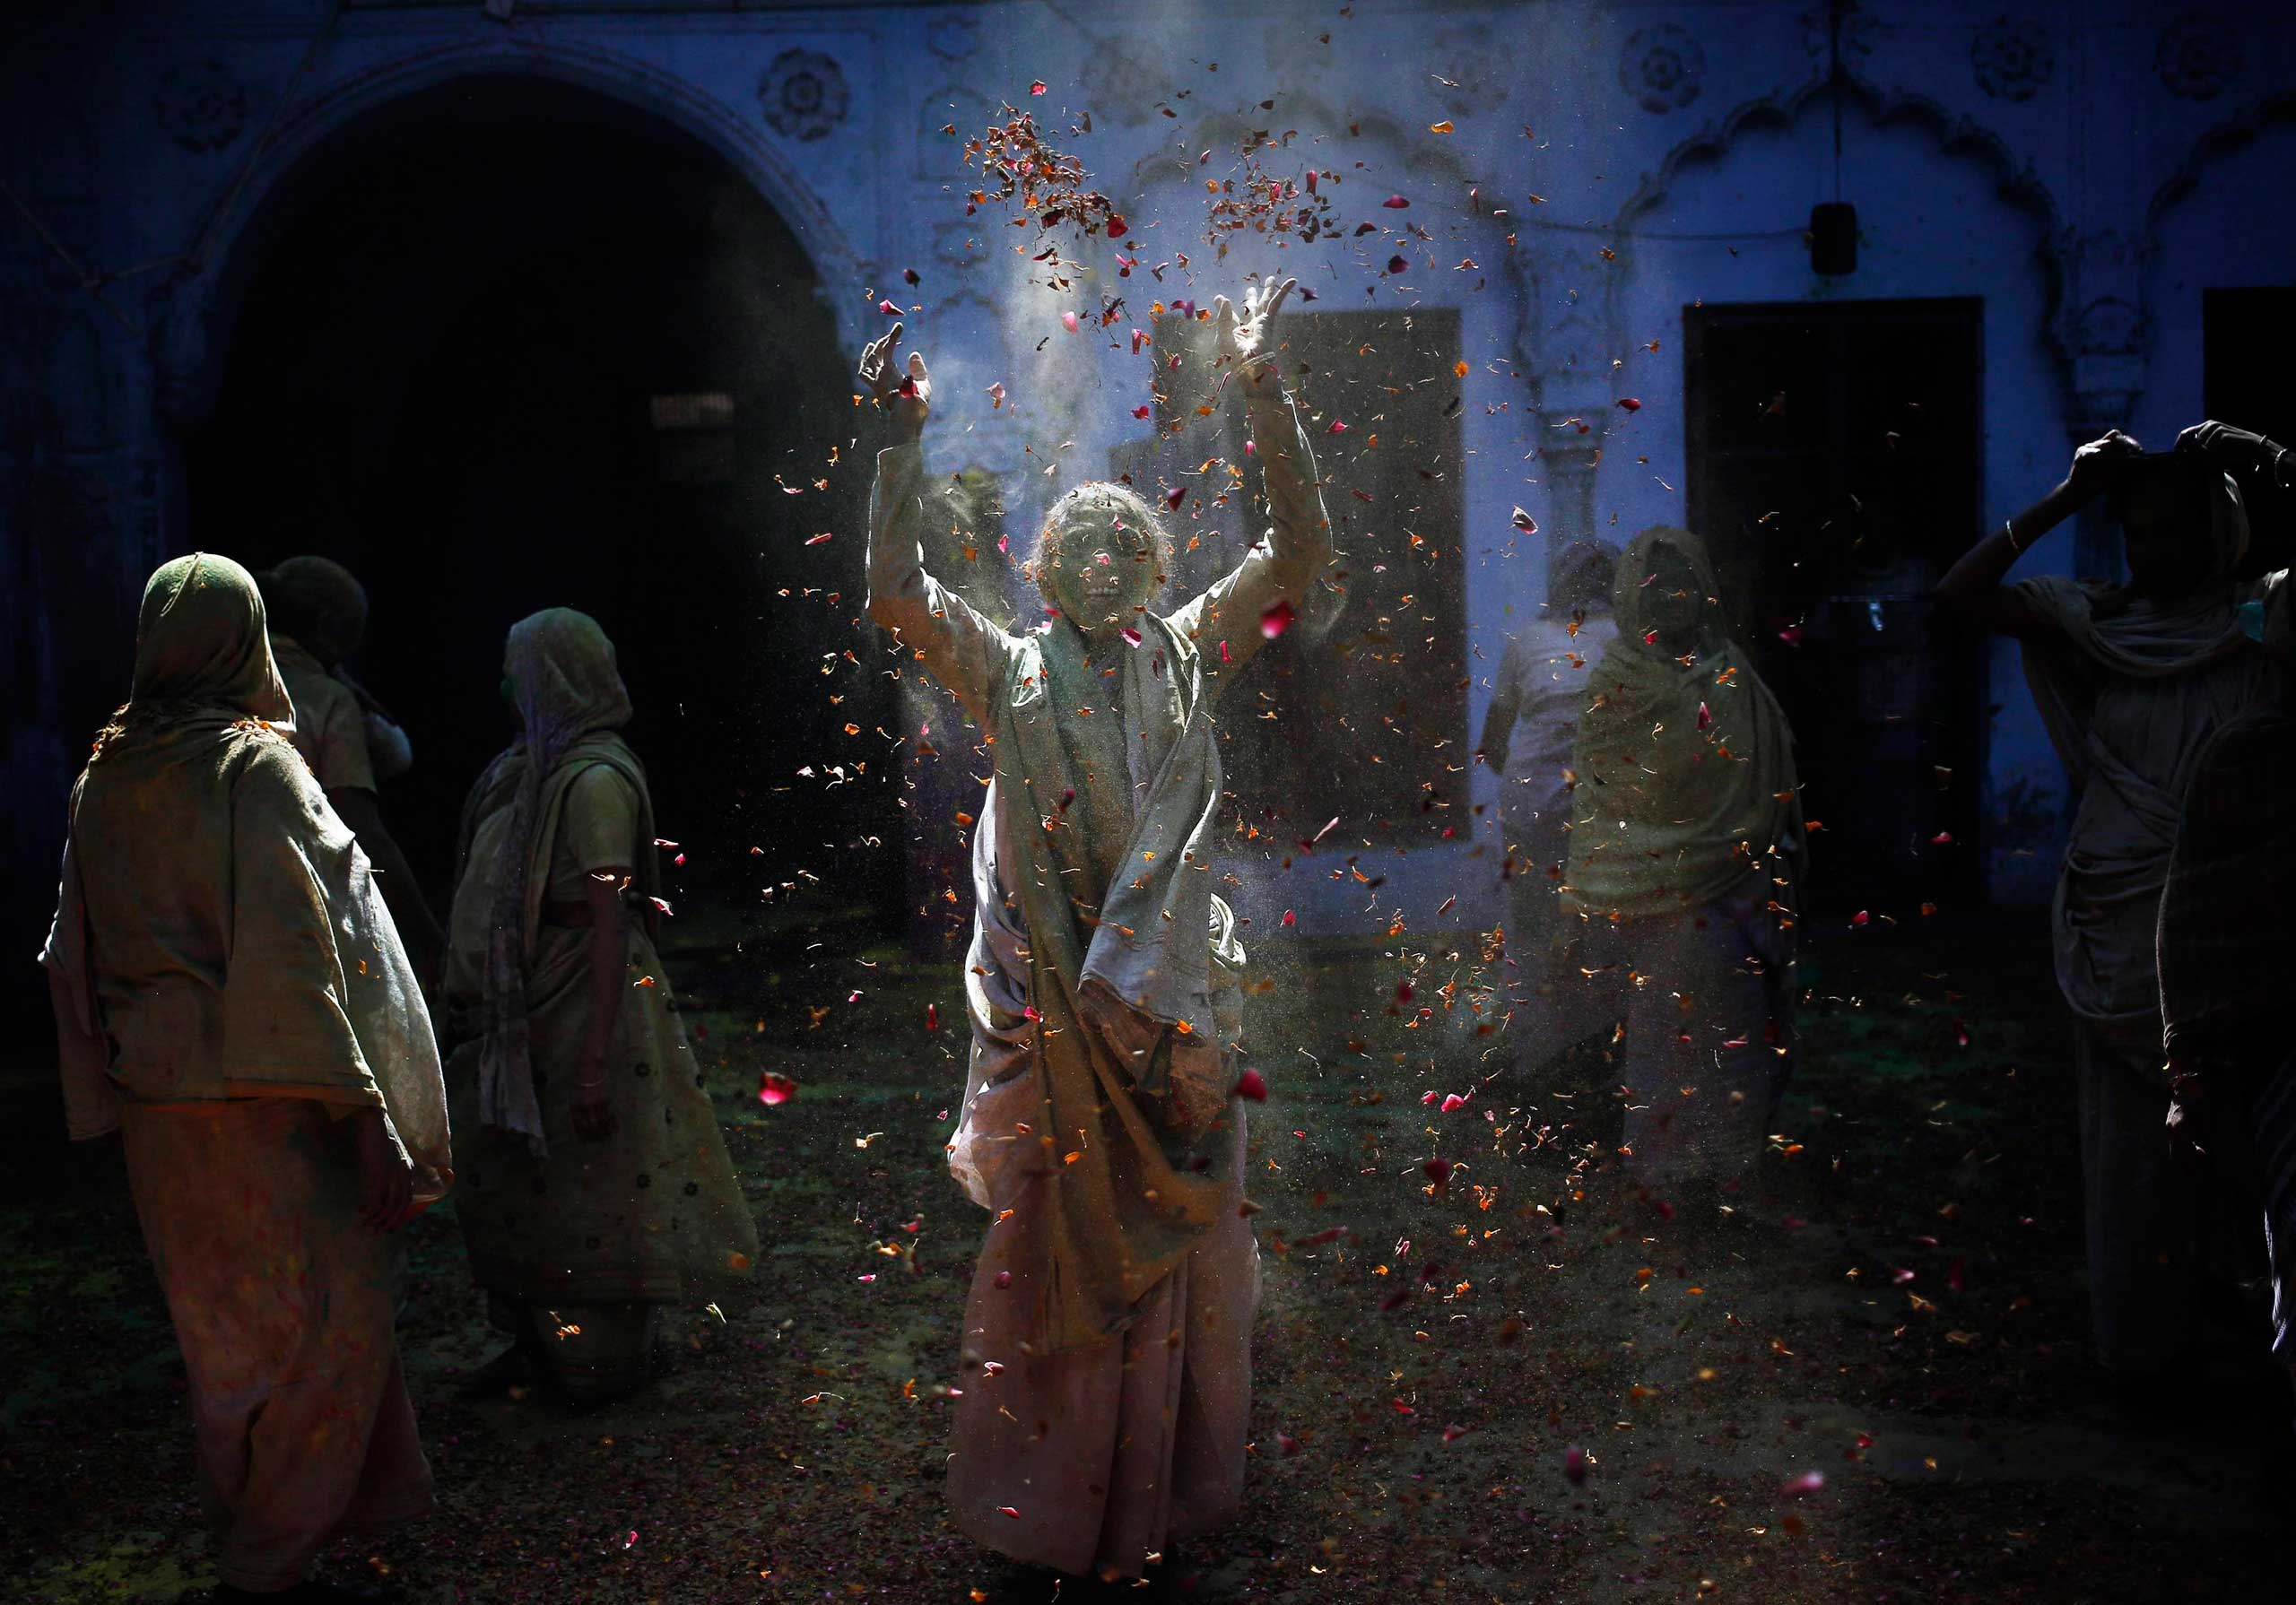 A widow throws flower petals as she, along with others, take part in the Holi celebrations organised by a non-governmental organisation Sulabh International at a widows' ashram at Vrindavan in the northern Indian state of Uttar Pradesh, March 4, 2015.